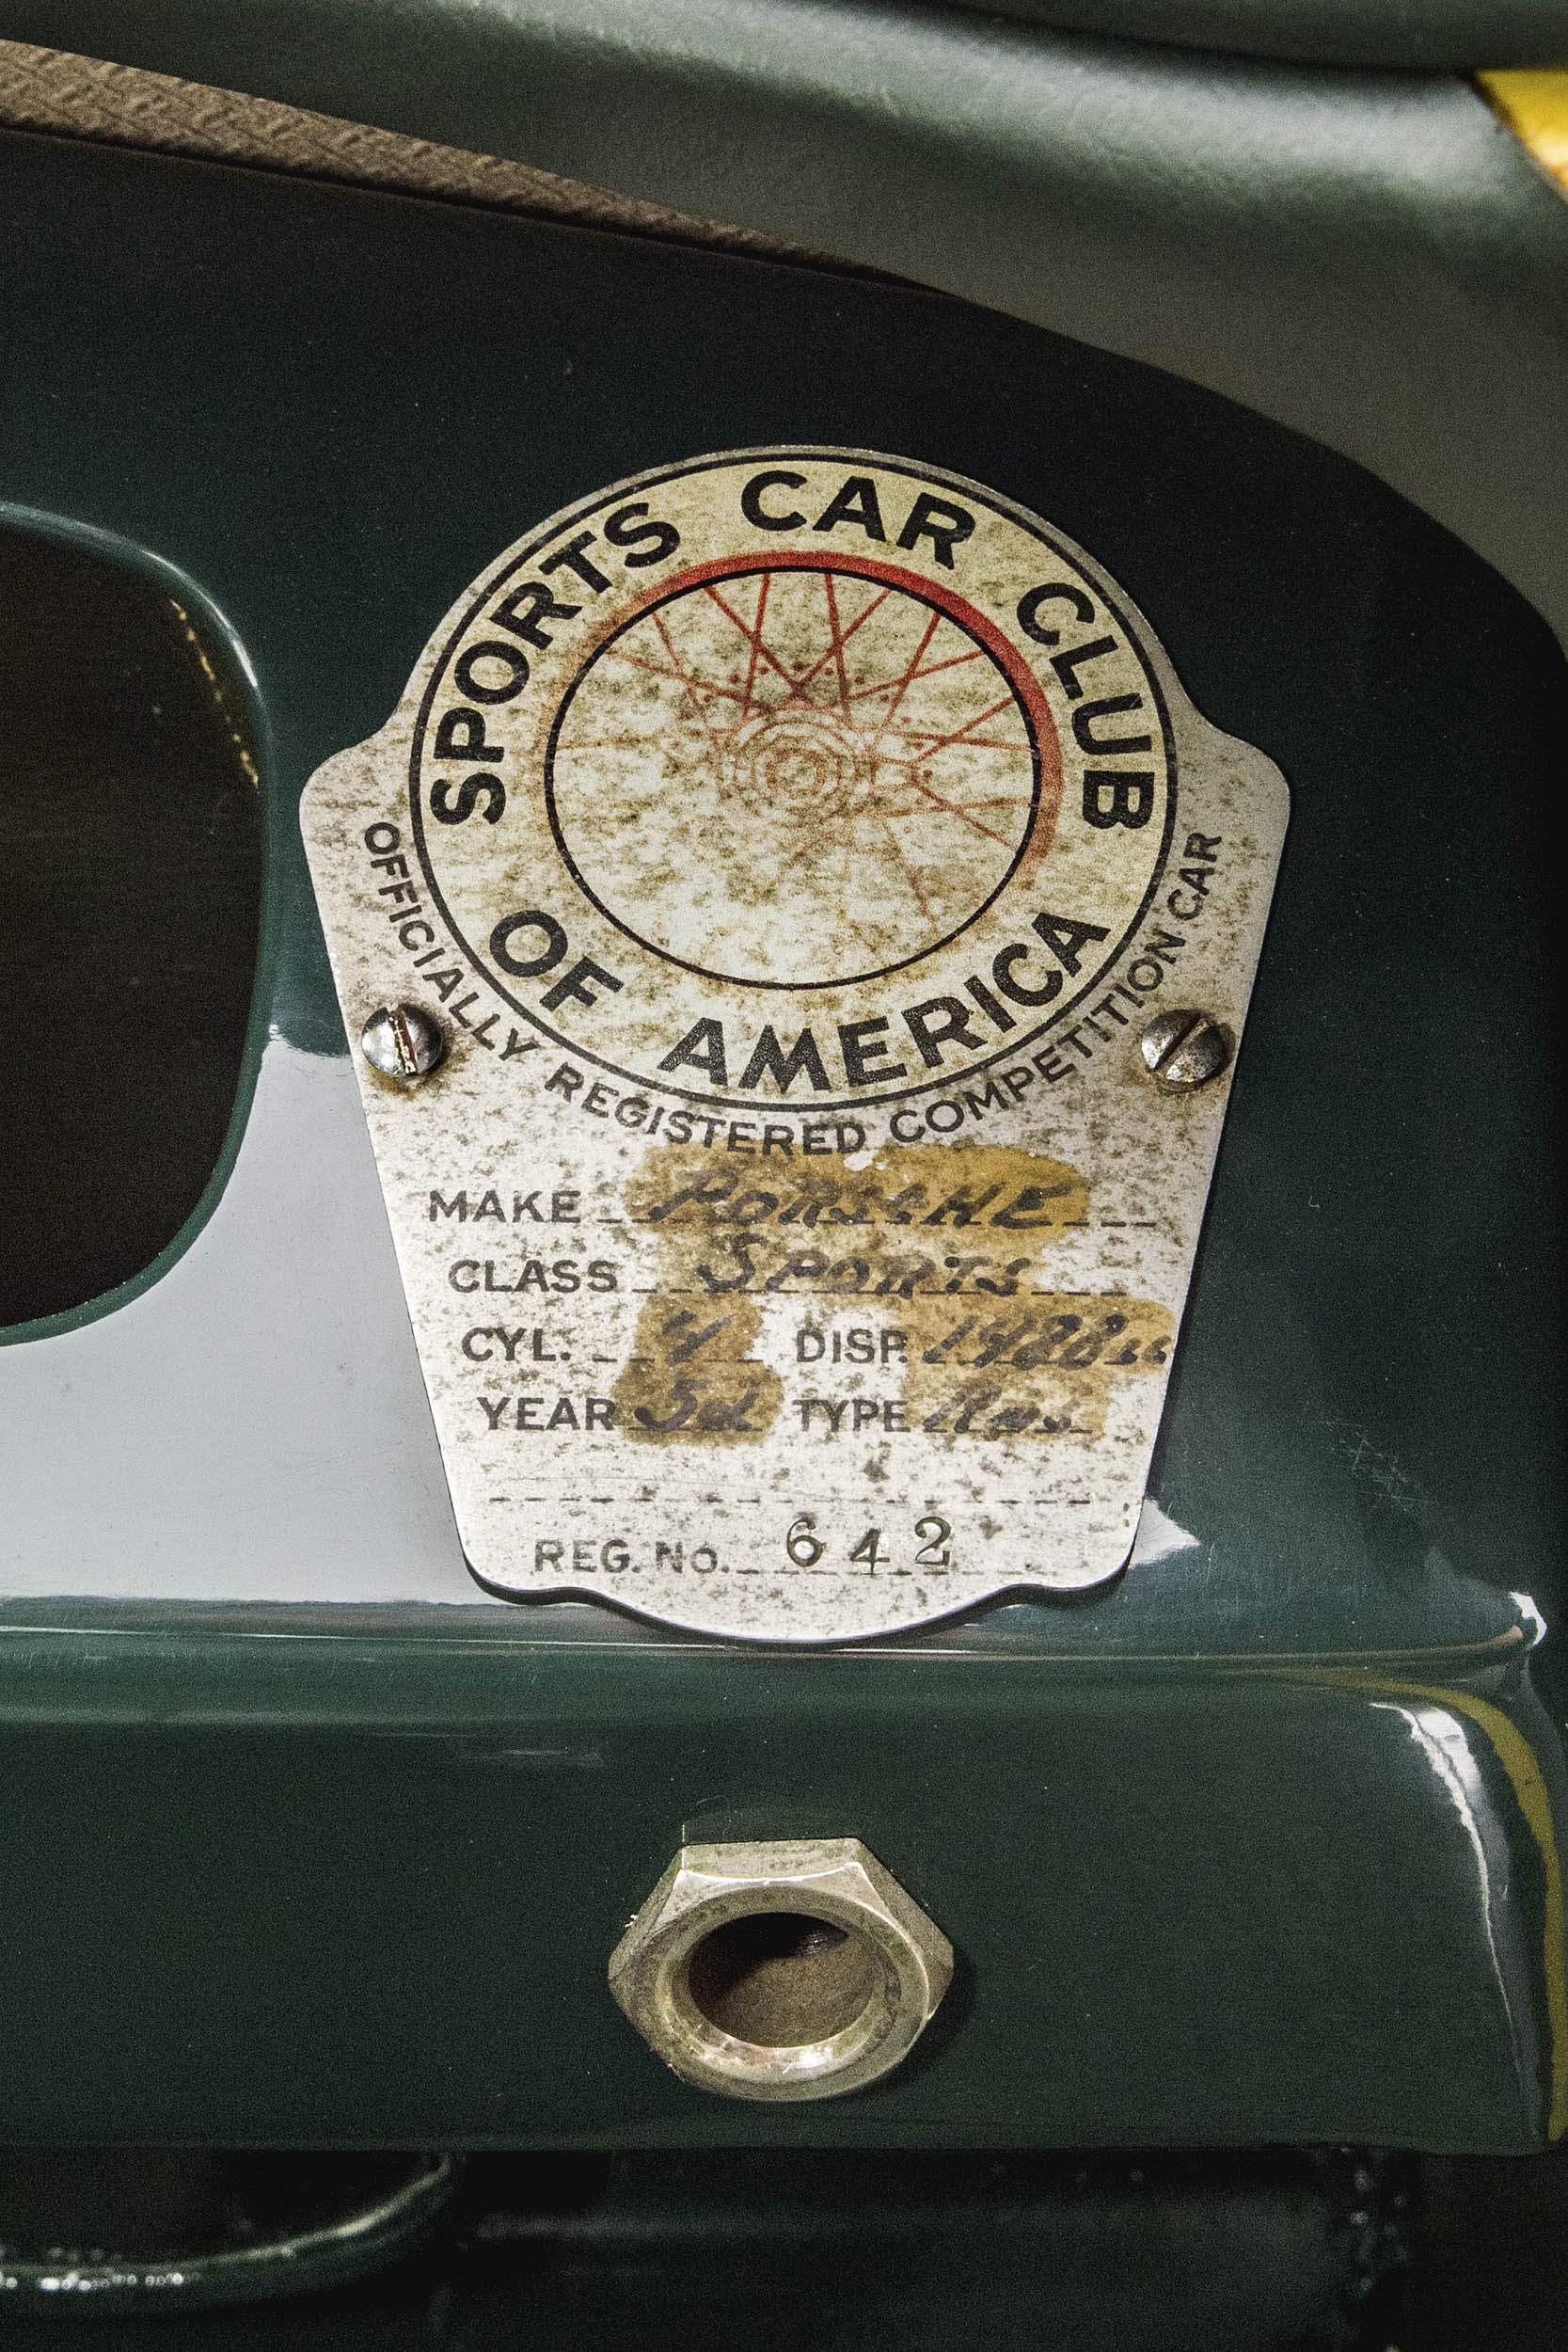 An SCCA competition badge was affixed to the dashboard many years ago.